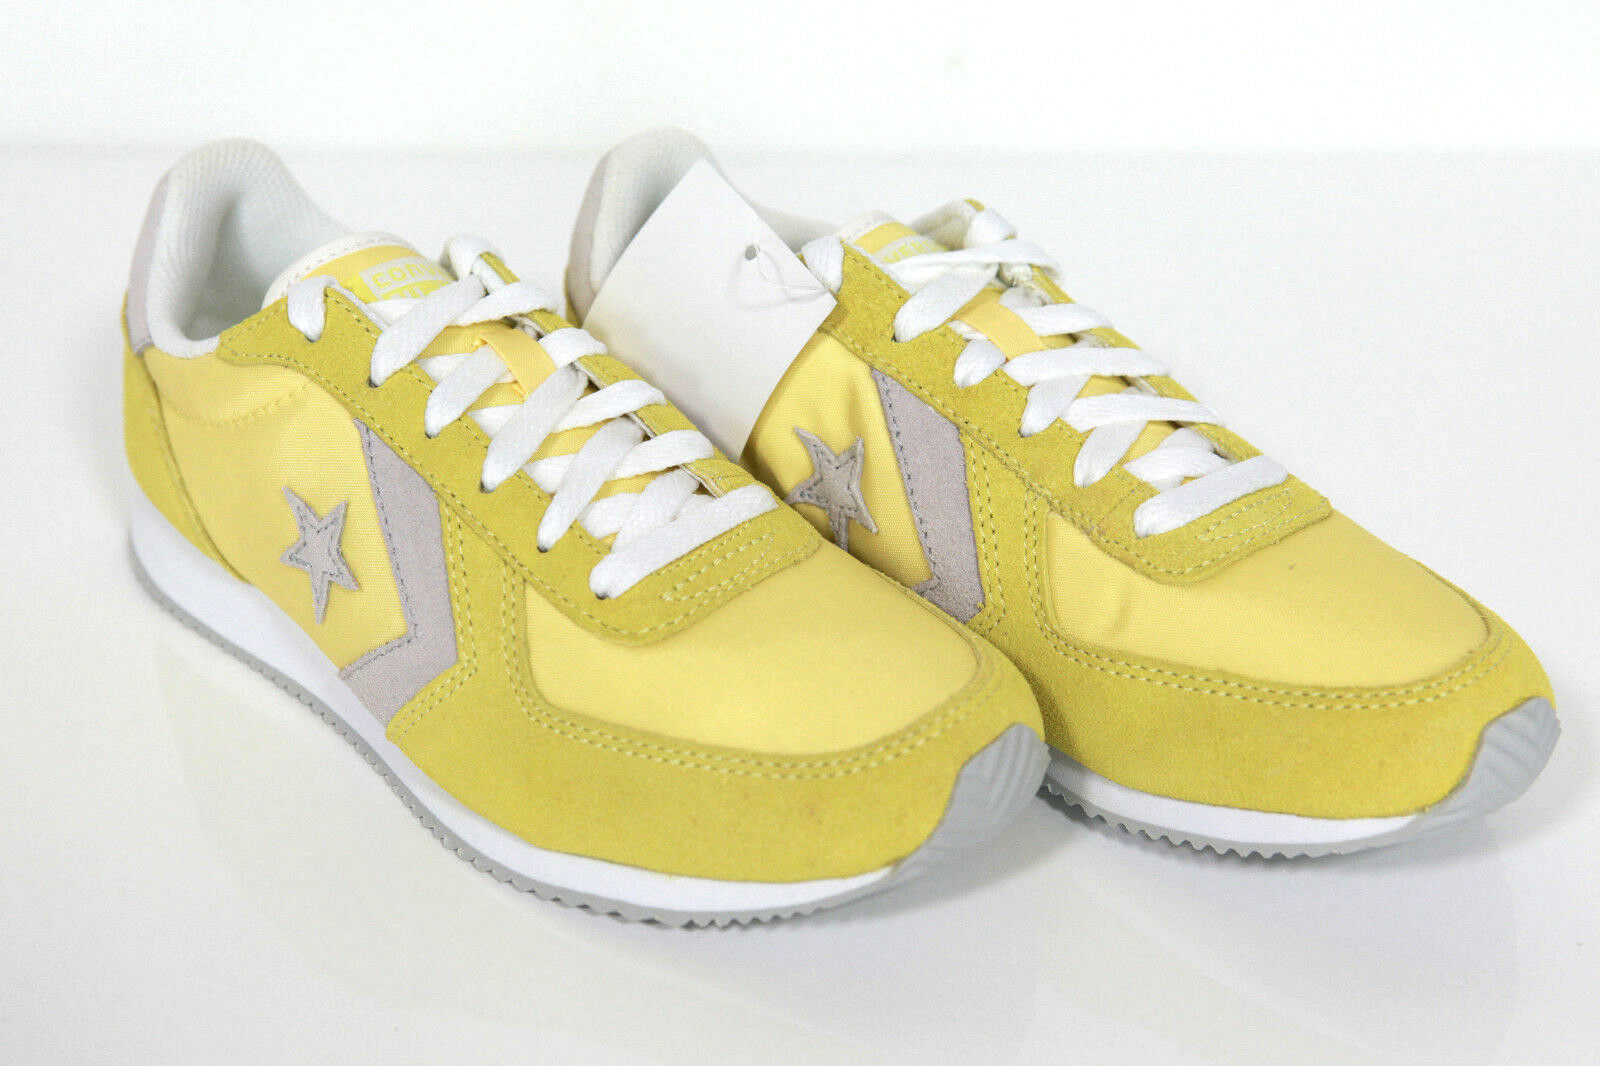 Neu Converse low Chucks All Star low Converse Arizona Racer 136971C Sneaker Retro Gr.40 50b52b